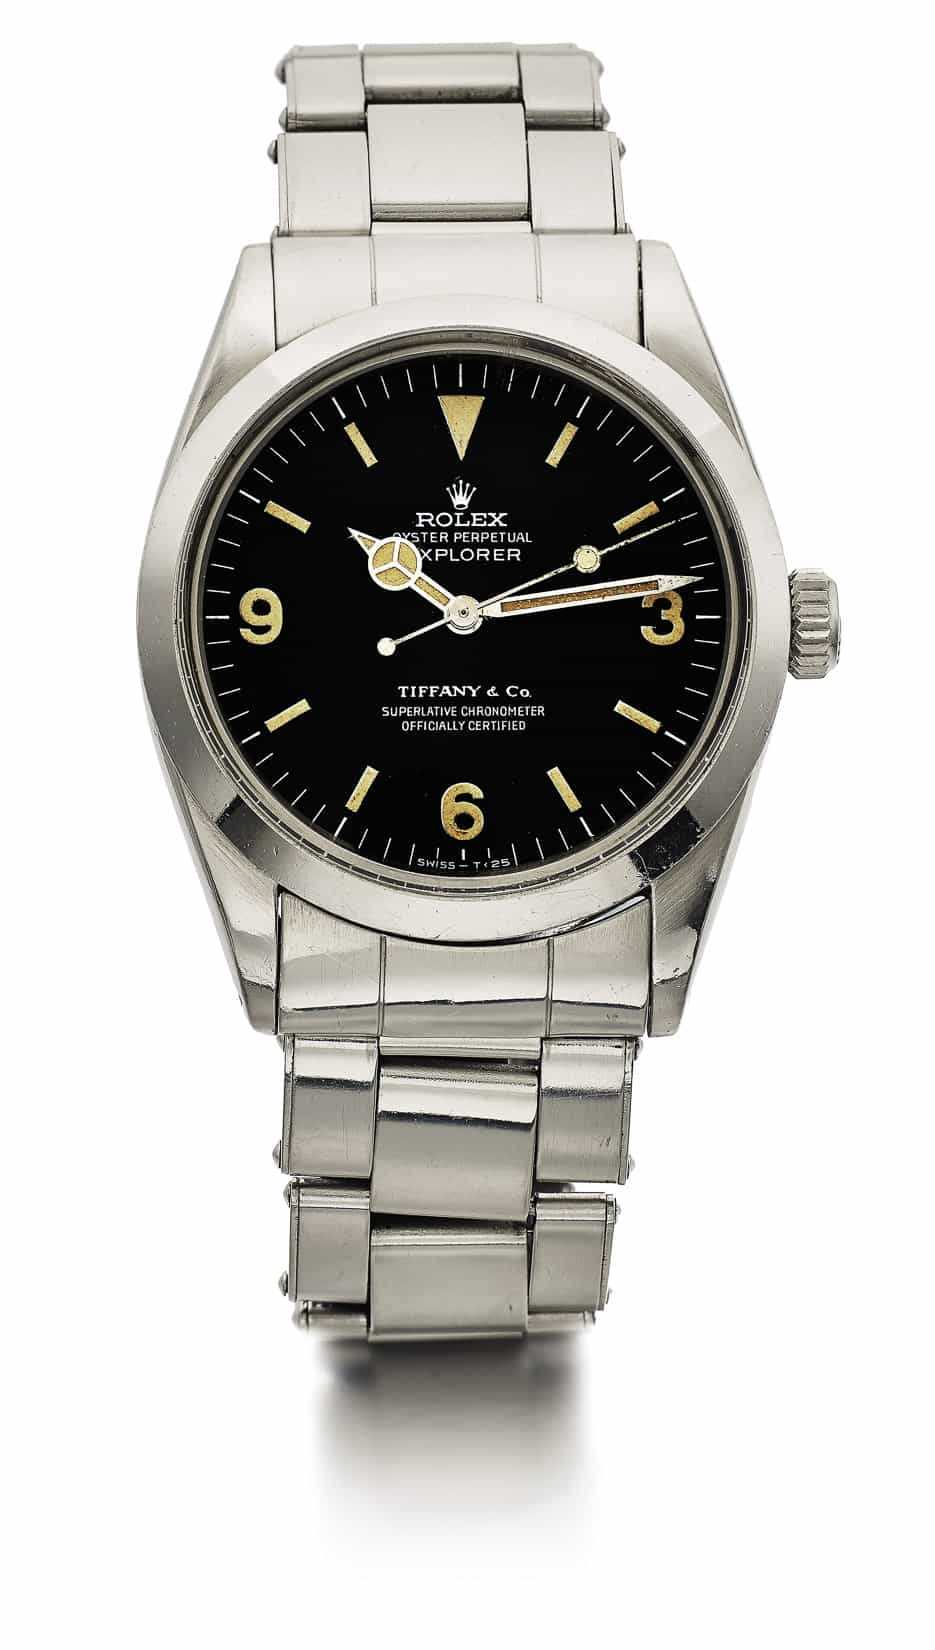 Watch Auctions